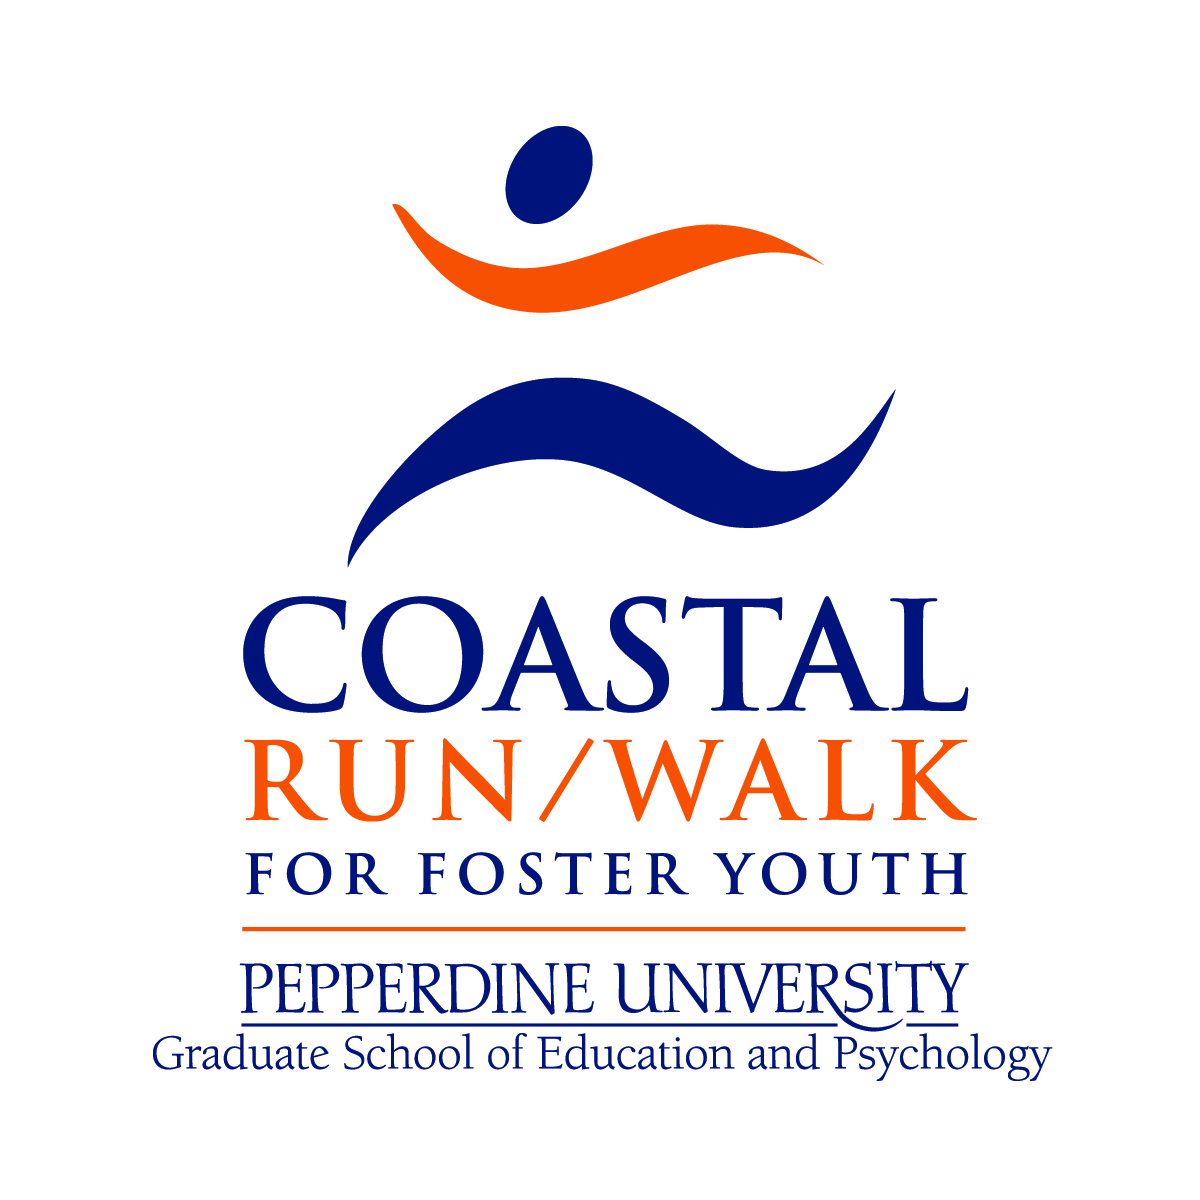 COASTAL RUN WALK WITH ORIGINAL LOGO FINAL 281C 158C (2)_1